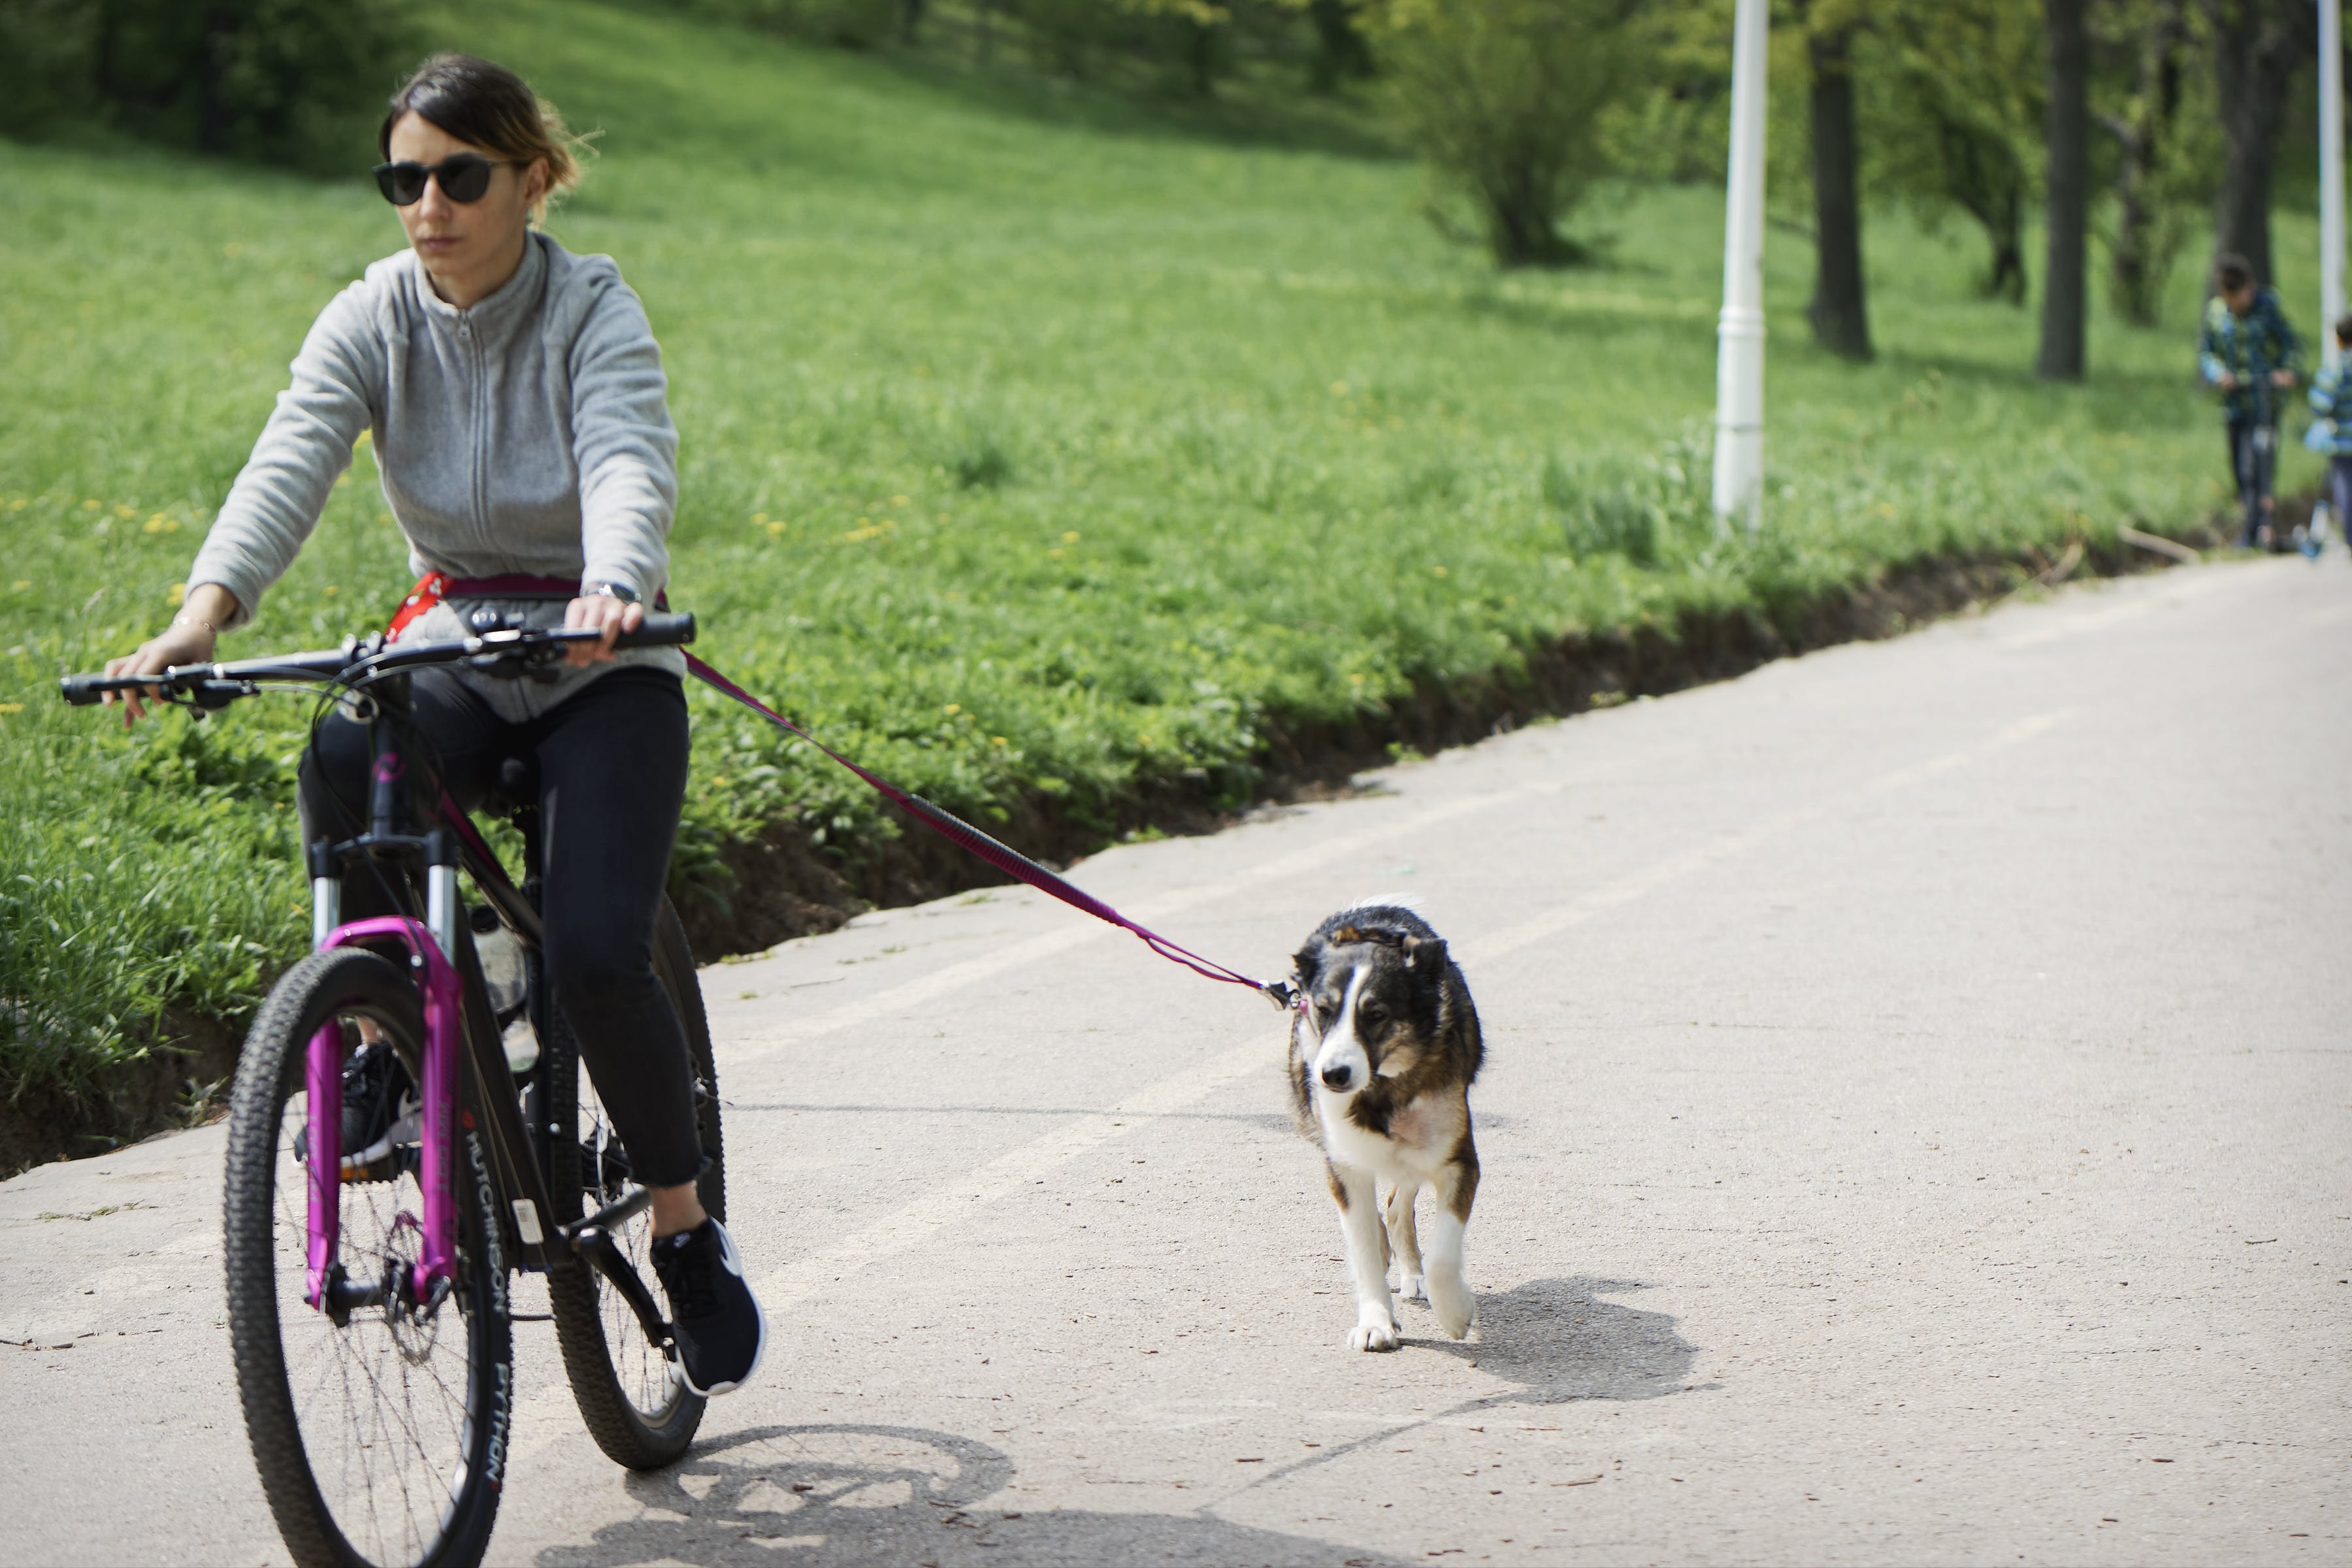 Free stock photo of bicycle, dog, girl with dog bicycling, grass